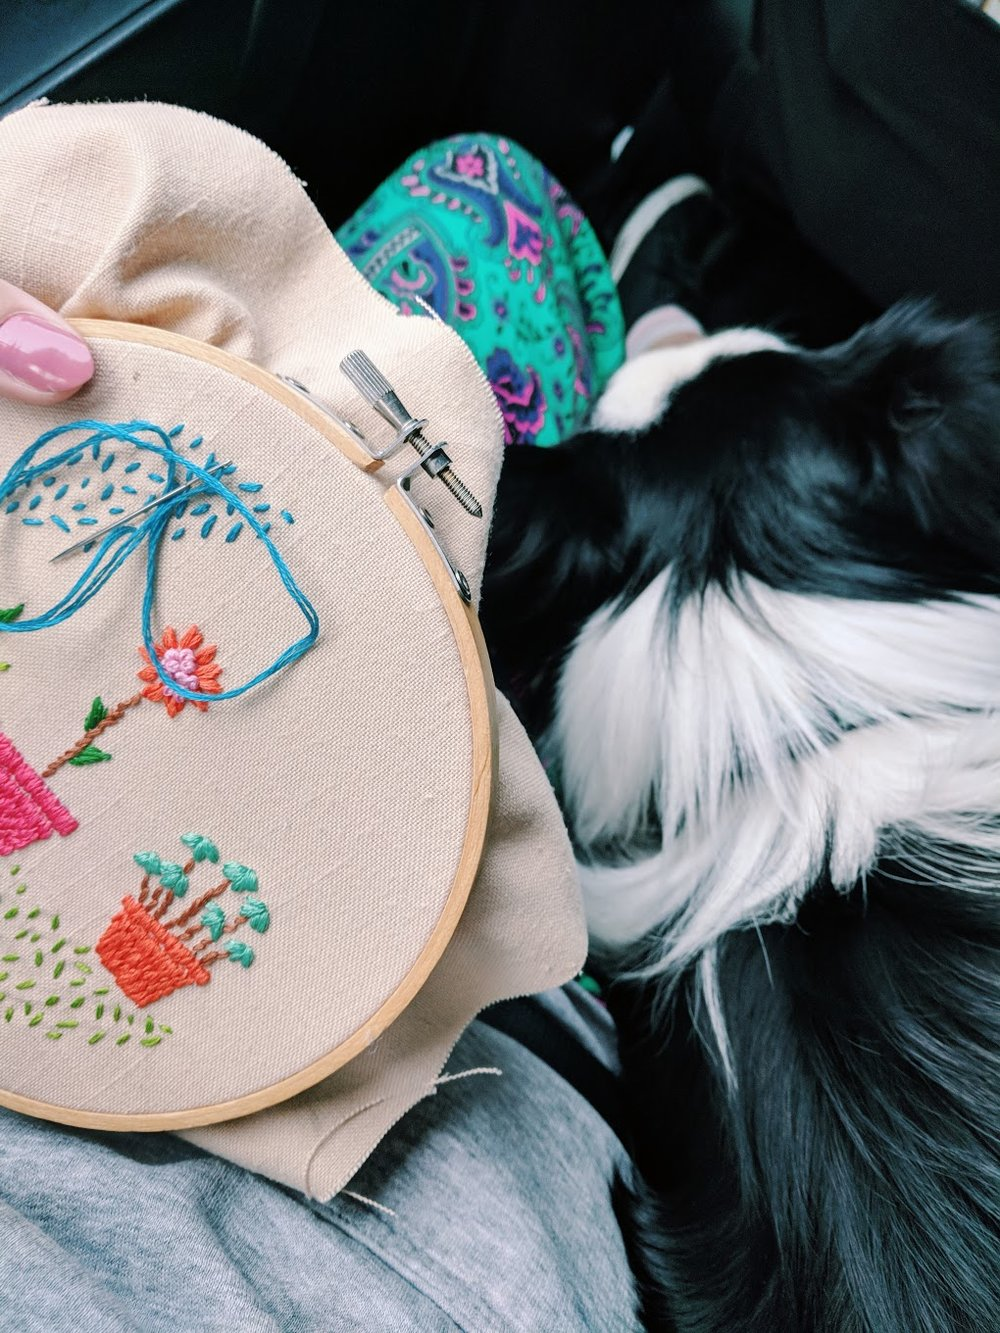 Embroidery is the best travel project. I have a little bag that I put all my threads, my needle and scissors in. With me is my travel buddy Finnegan of  @finneganswonderland  :)